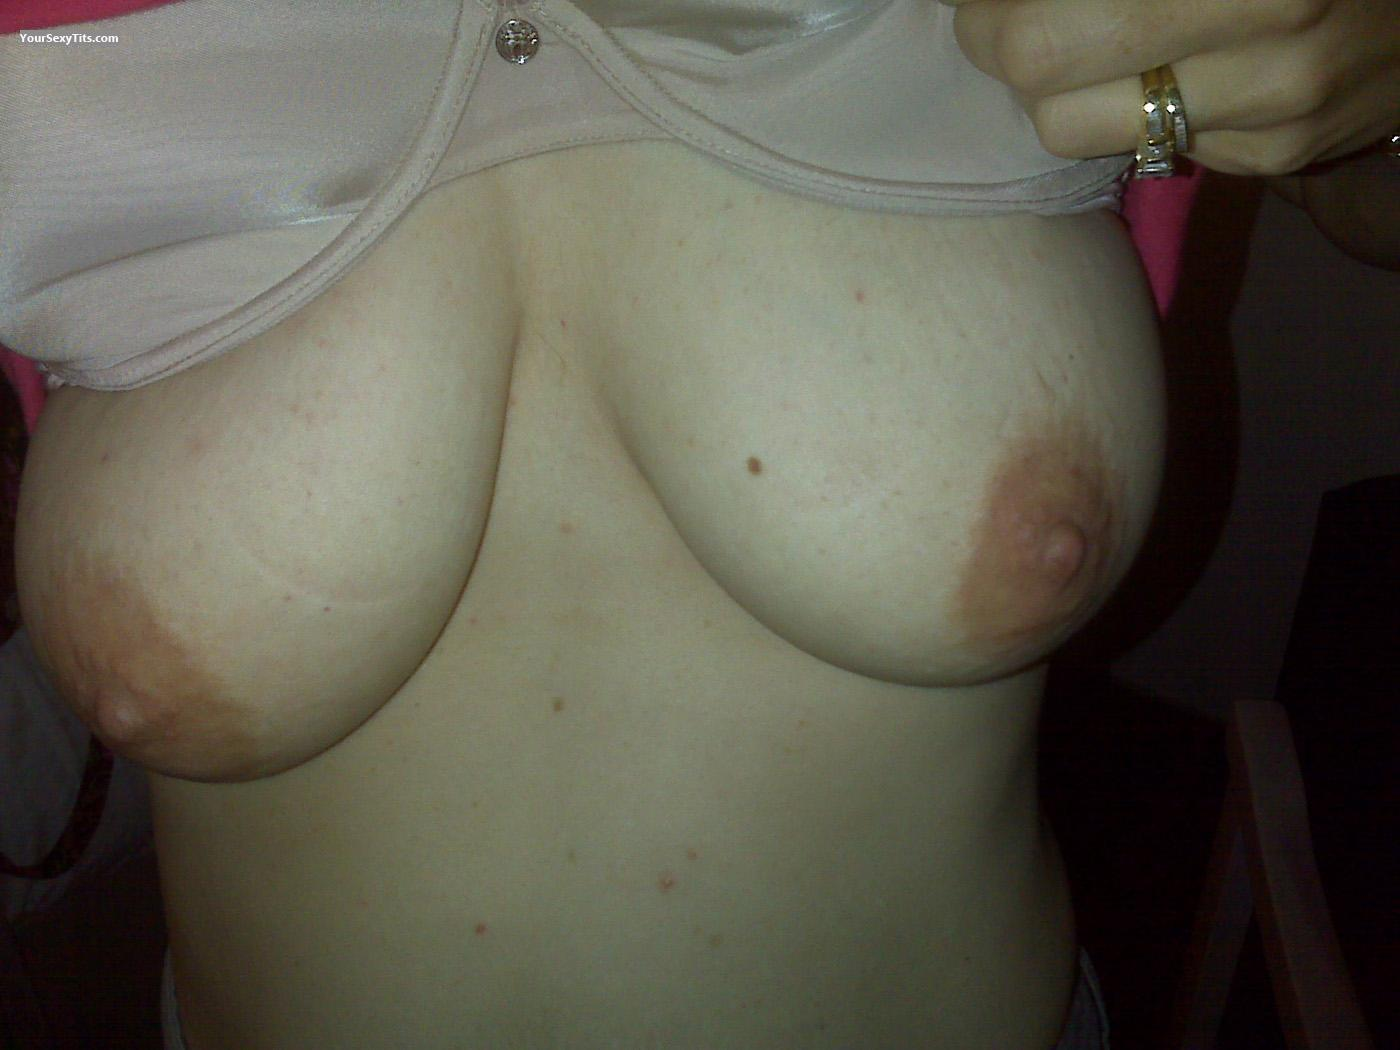 Tit Flash: Very Big Tits - GES from United States